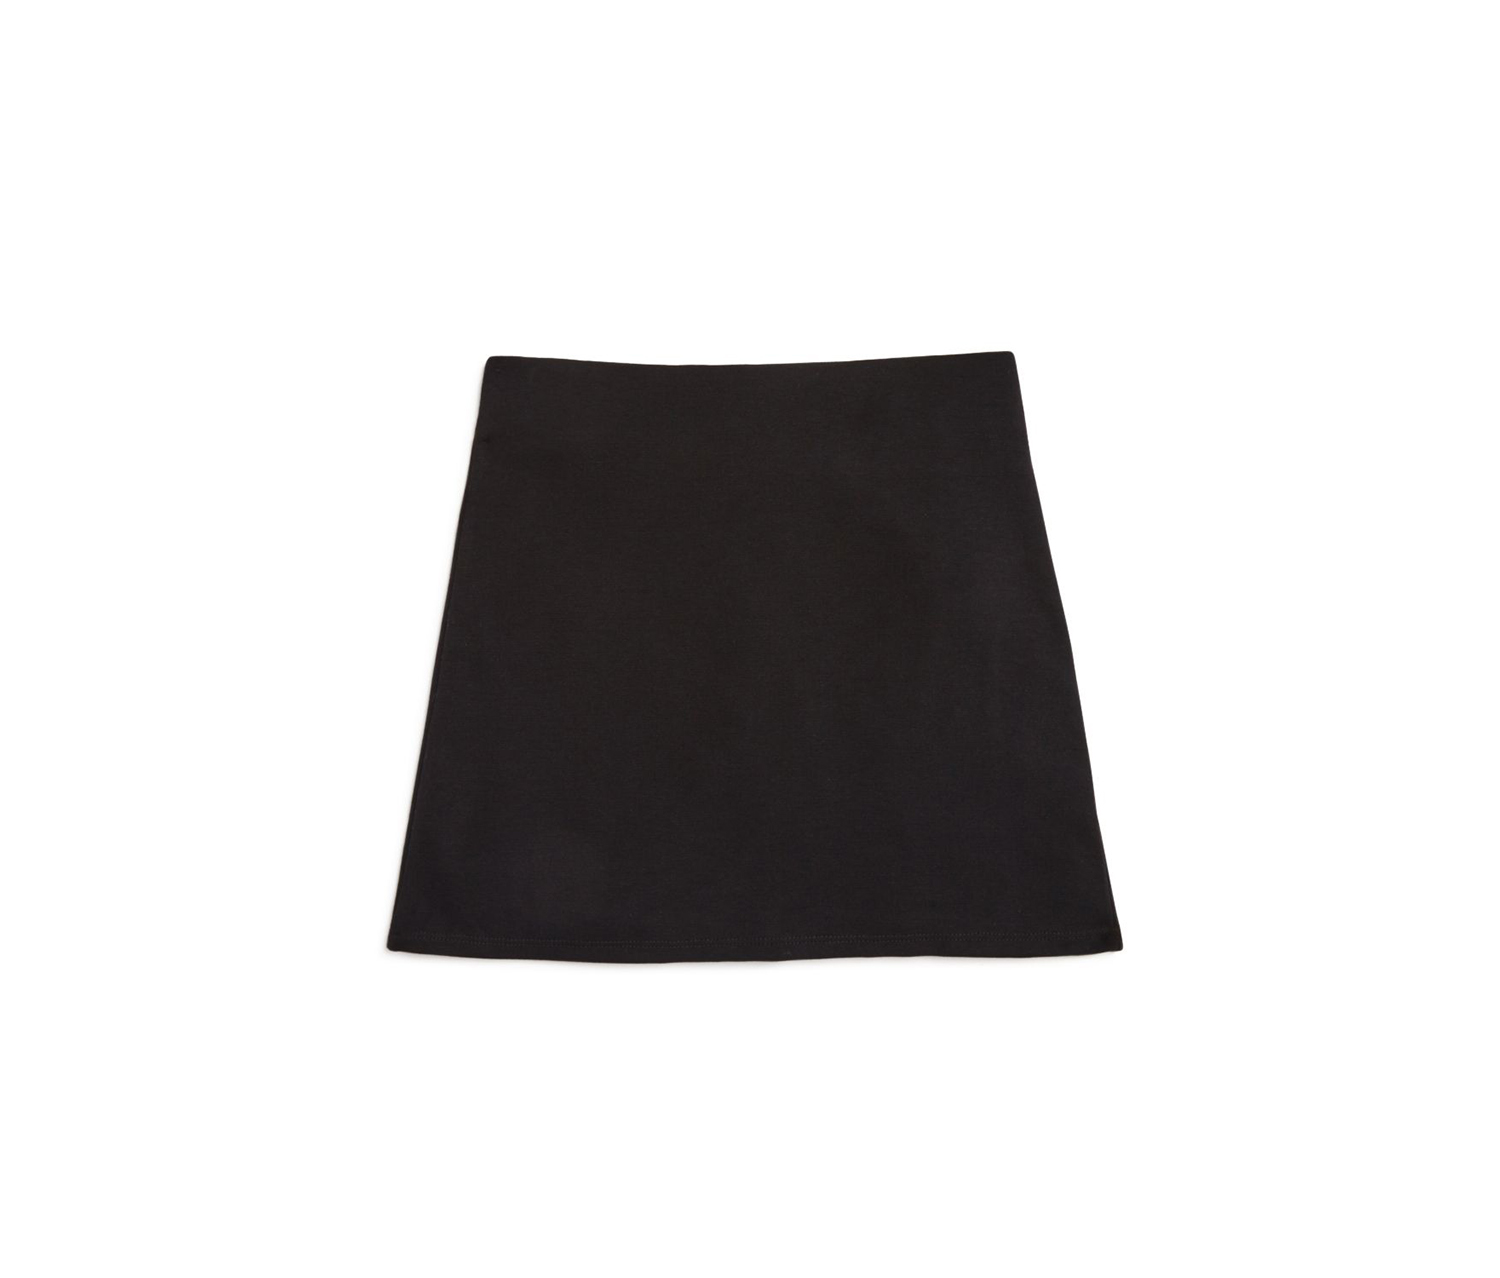 Aqua Girl's A-Line Skirt, Black